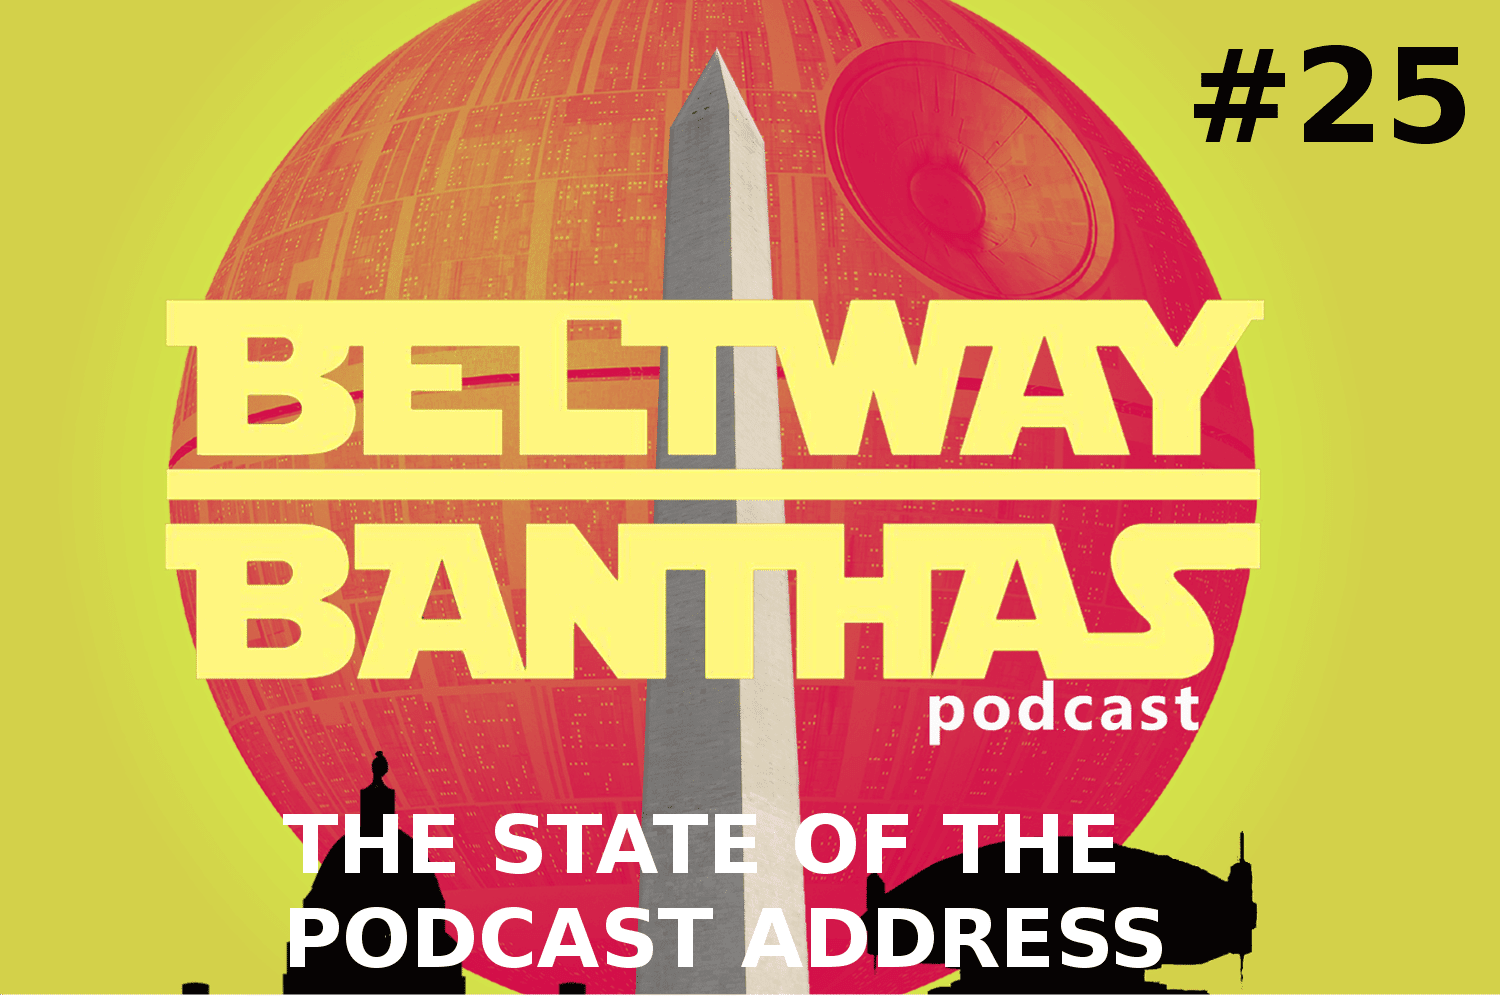 Beltway Banthas #25: The State of the Podcast Address